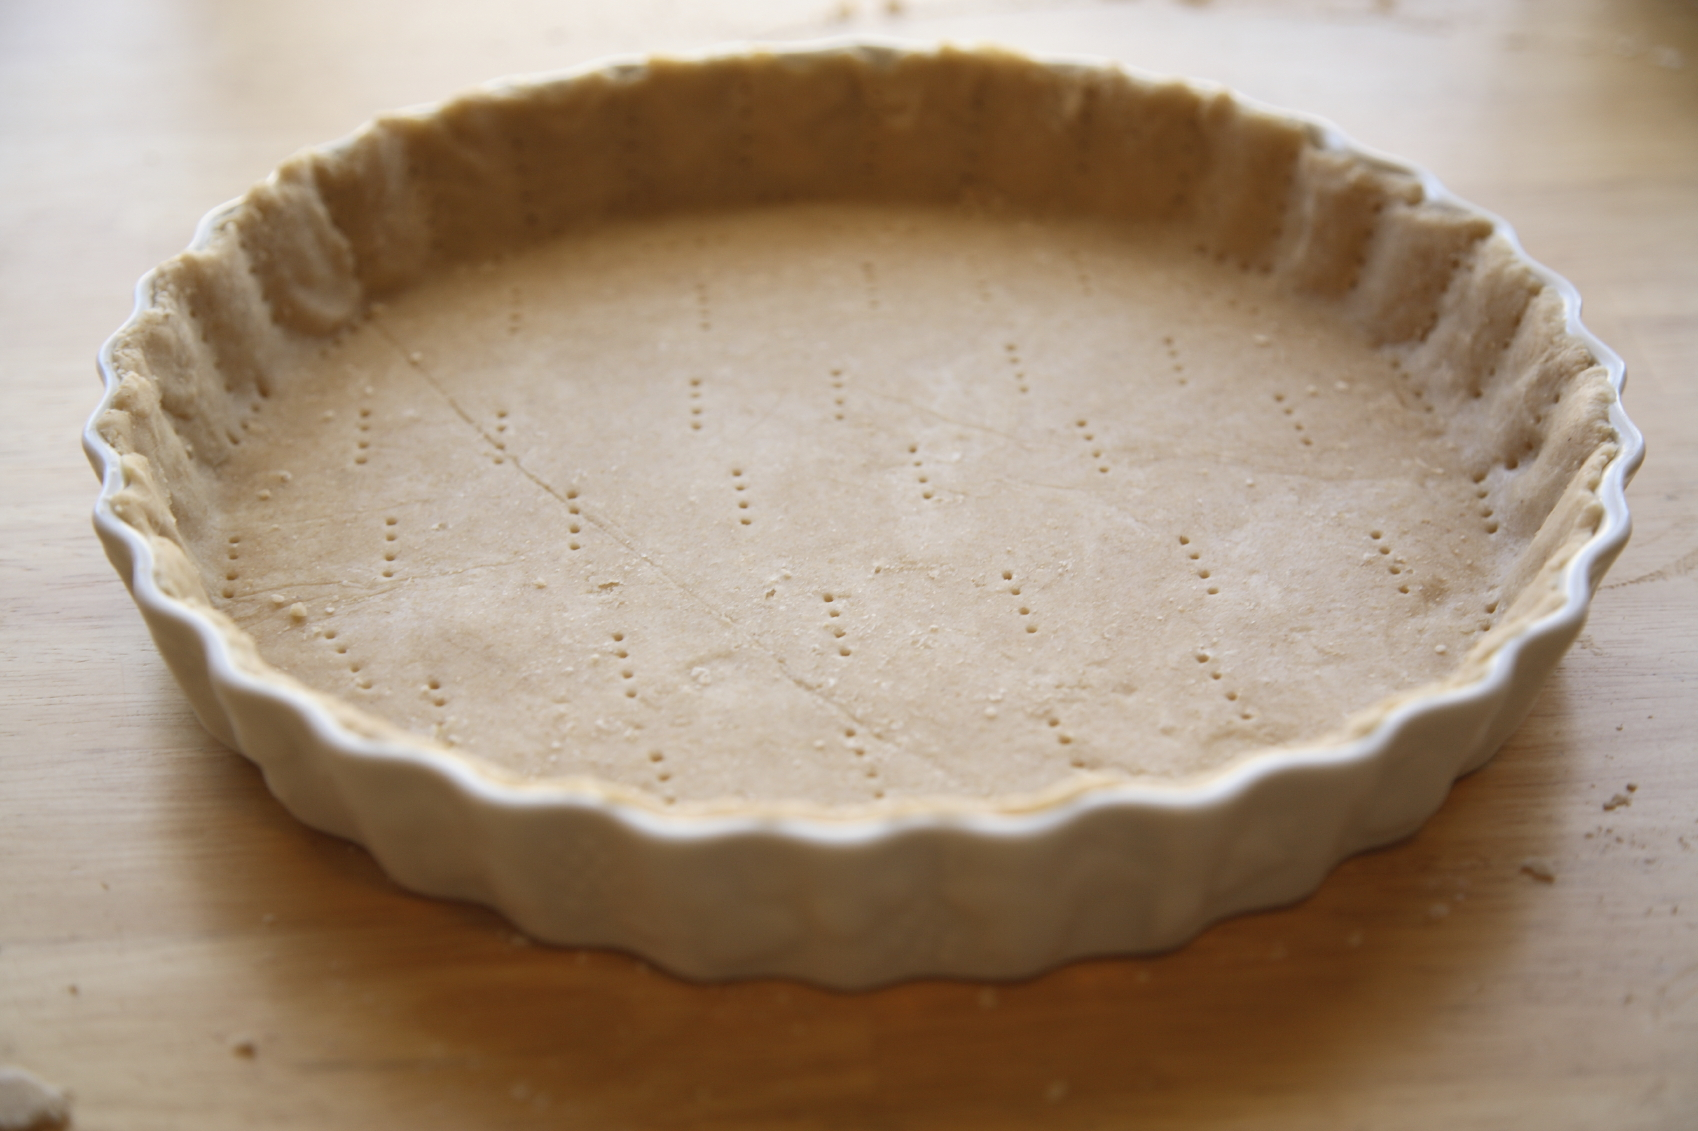 Pie crust doesn't have to look this perfect to taste amazing.